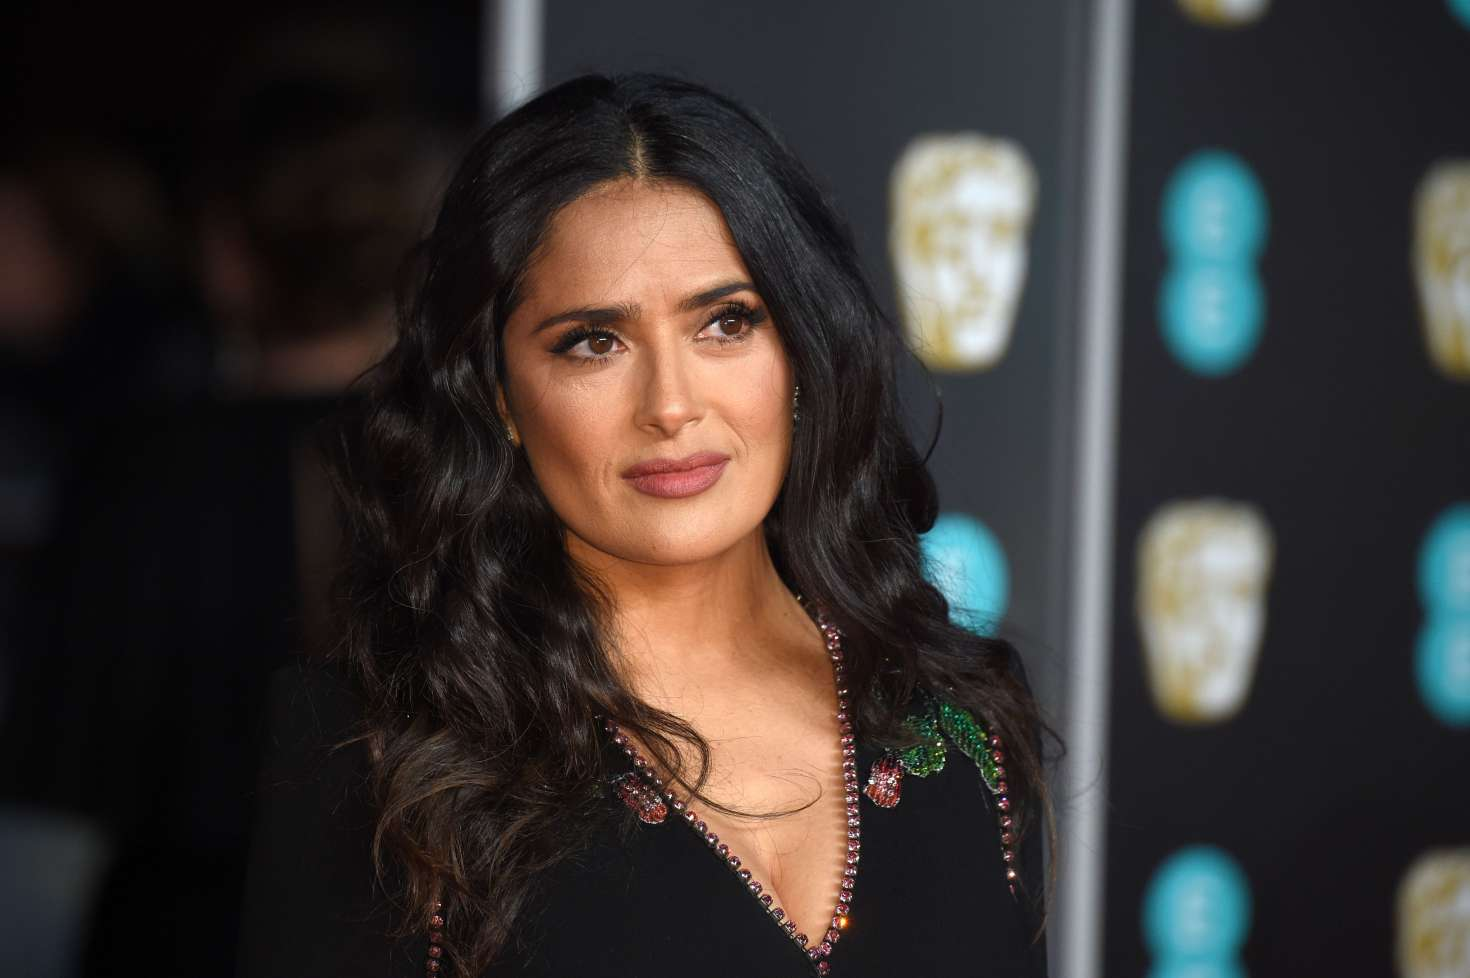 Salma Hayek Looks So Hot